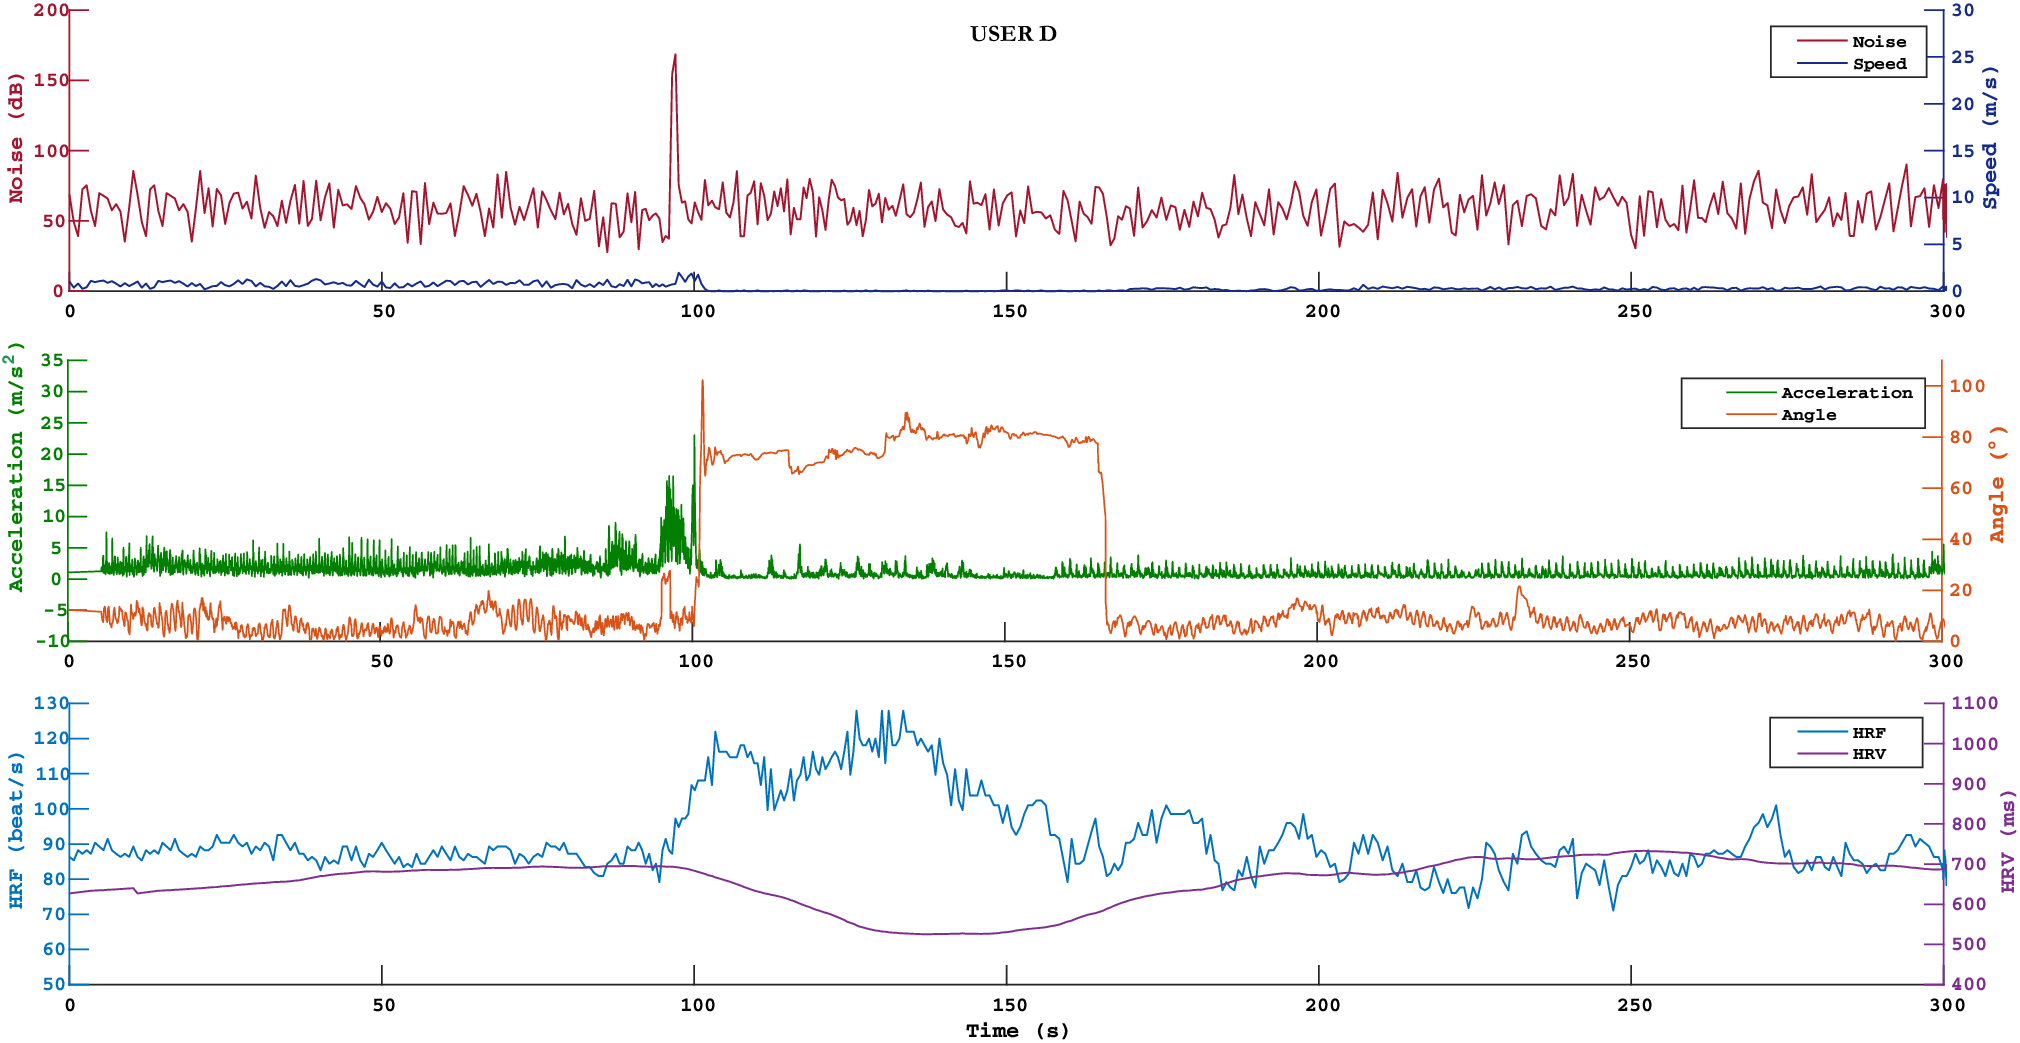 A distributed fuzzy system for dangerous events real-time